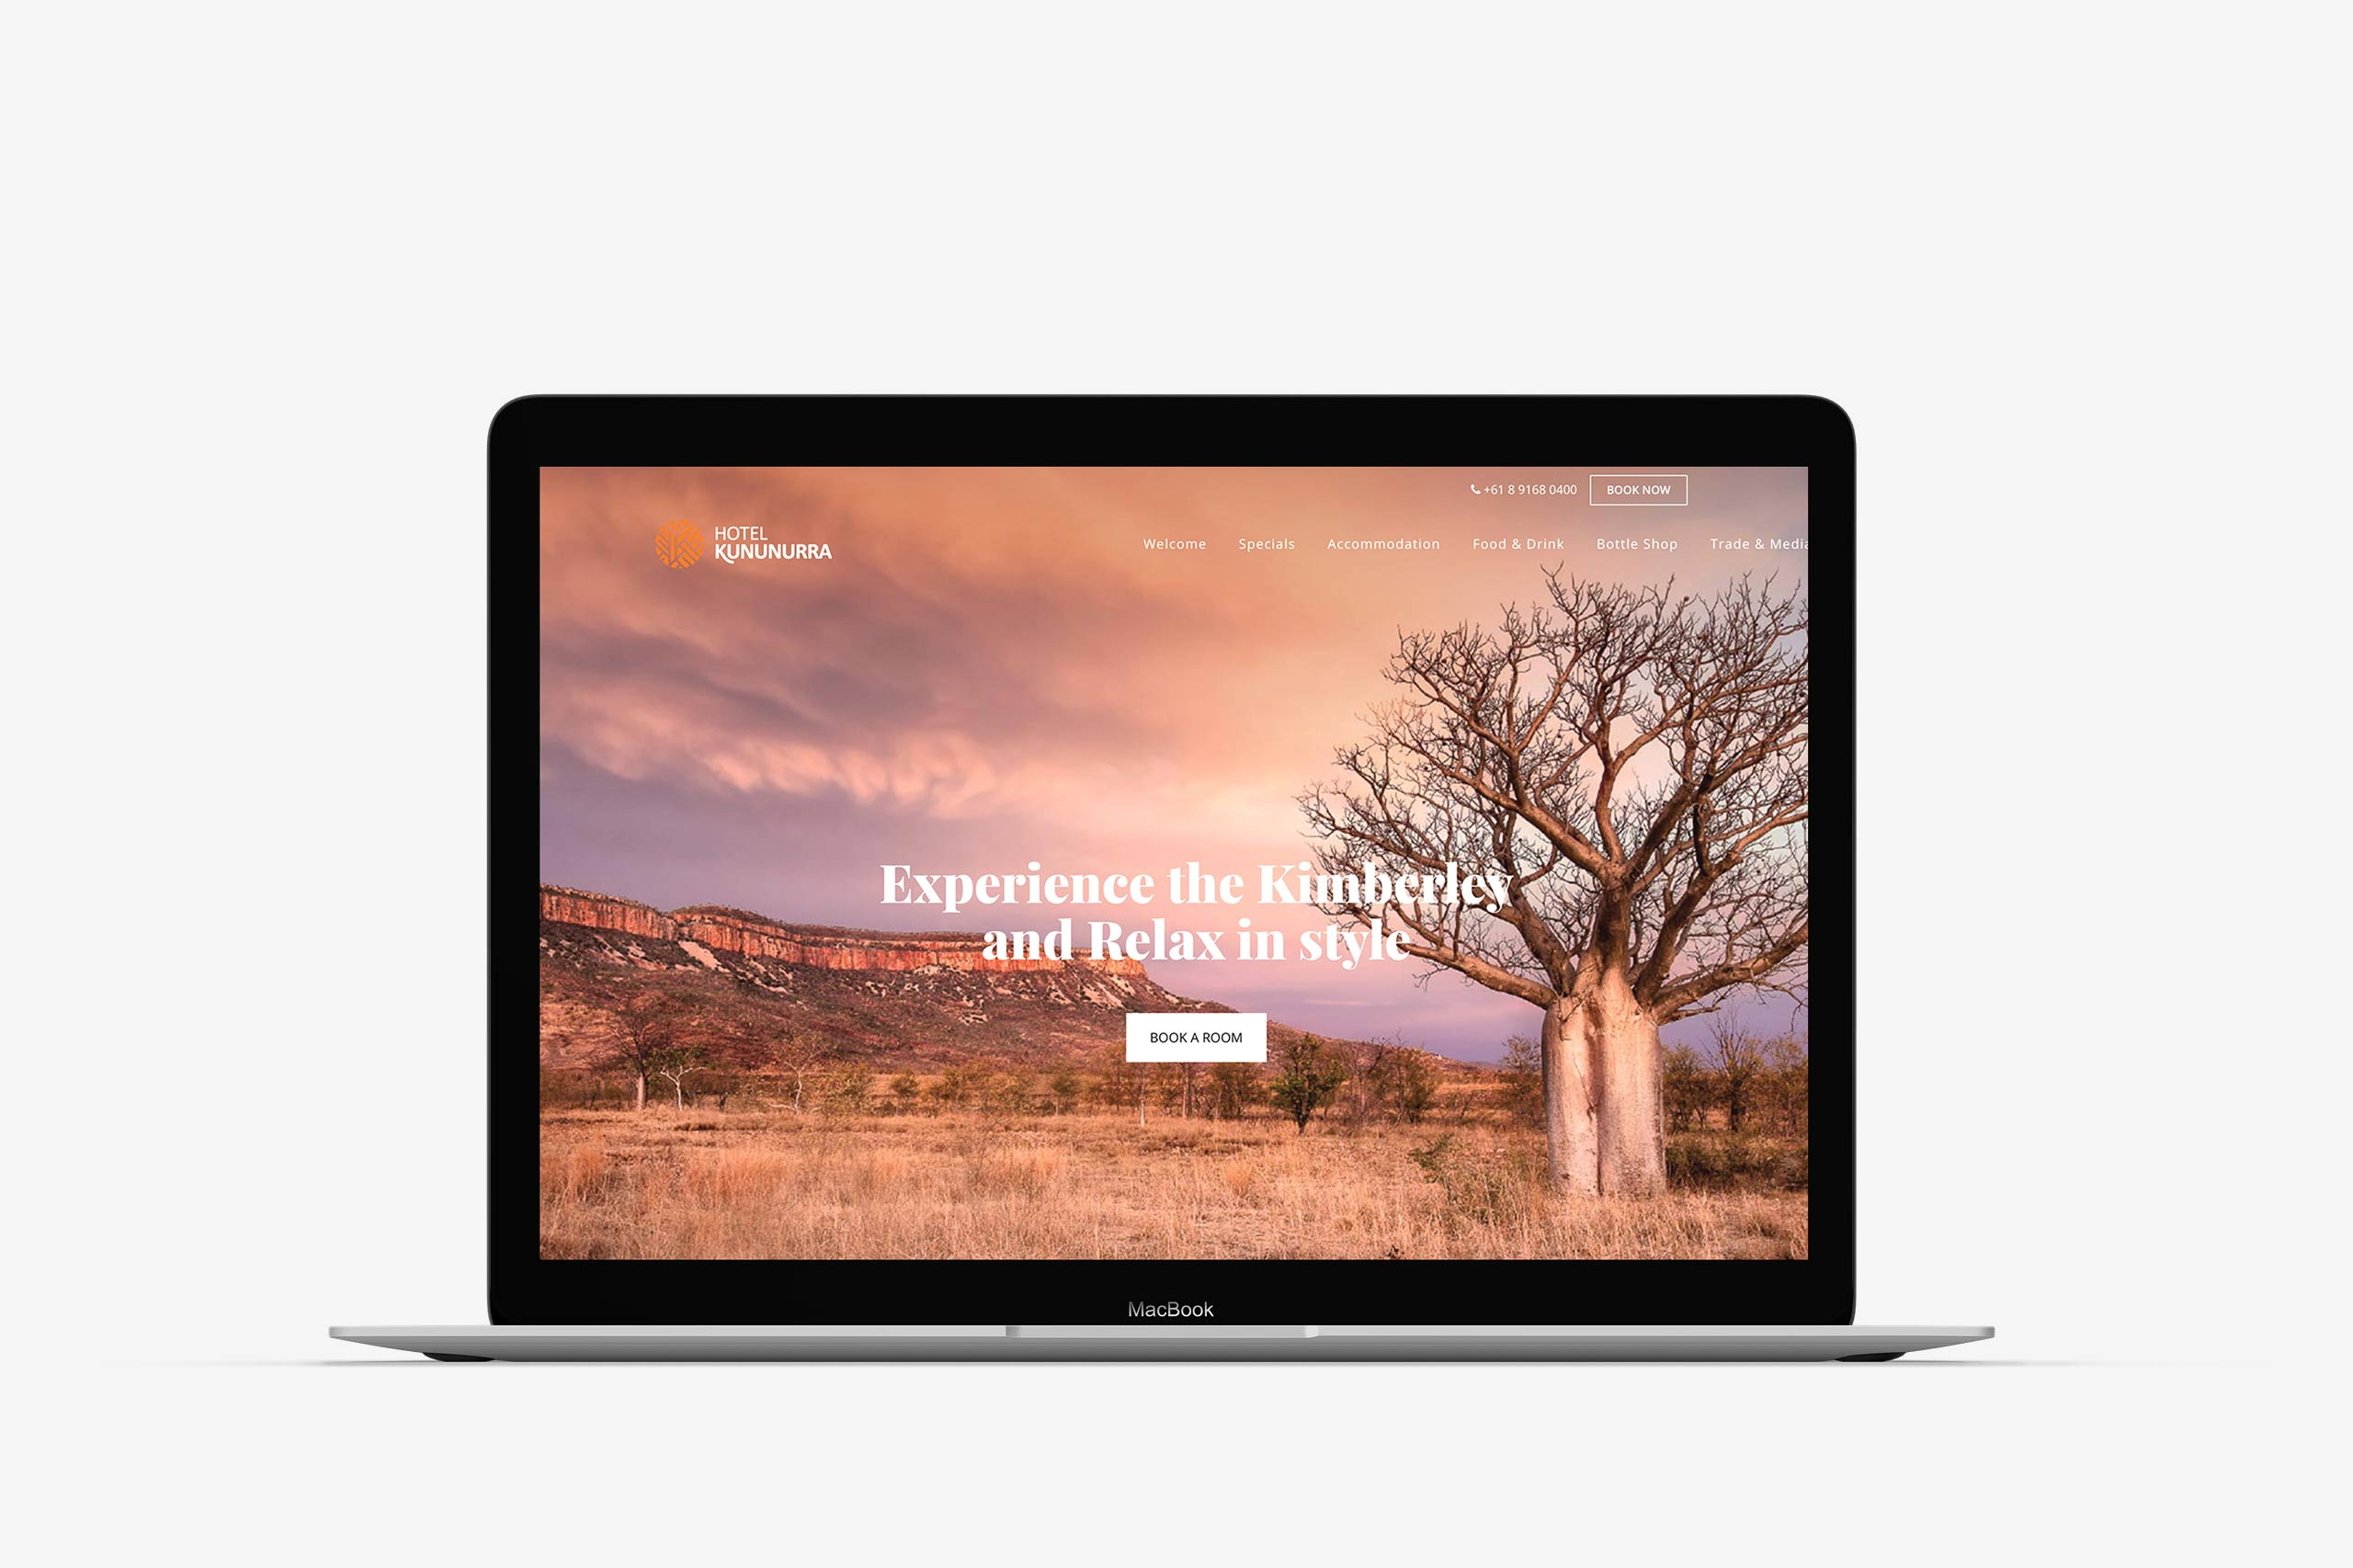 hotel kununurra website design maker and co design